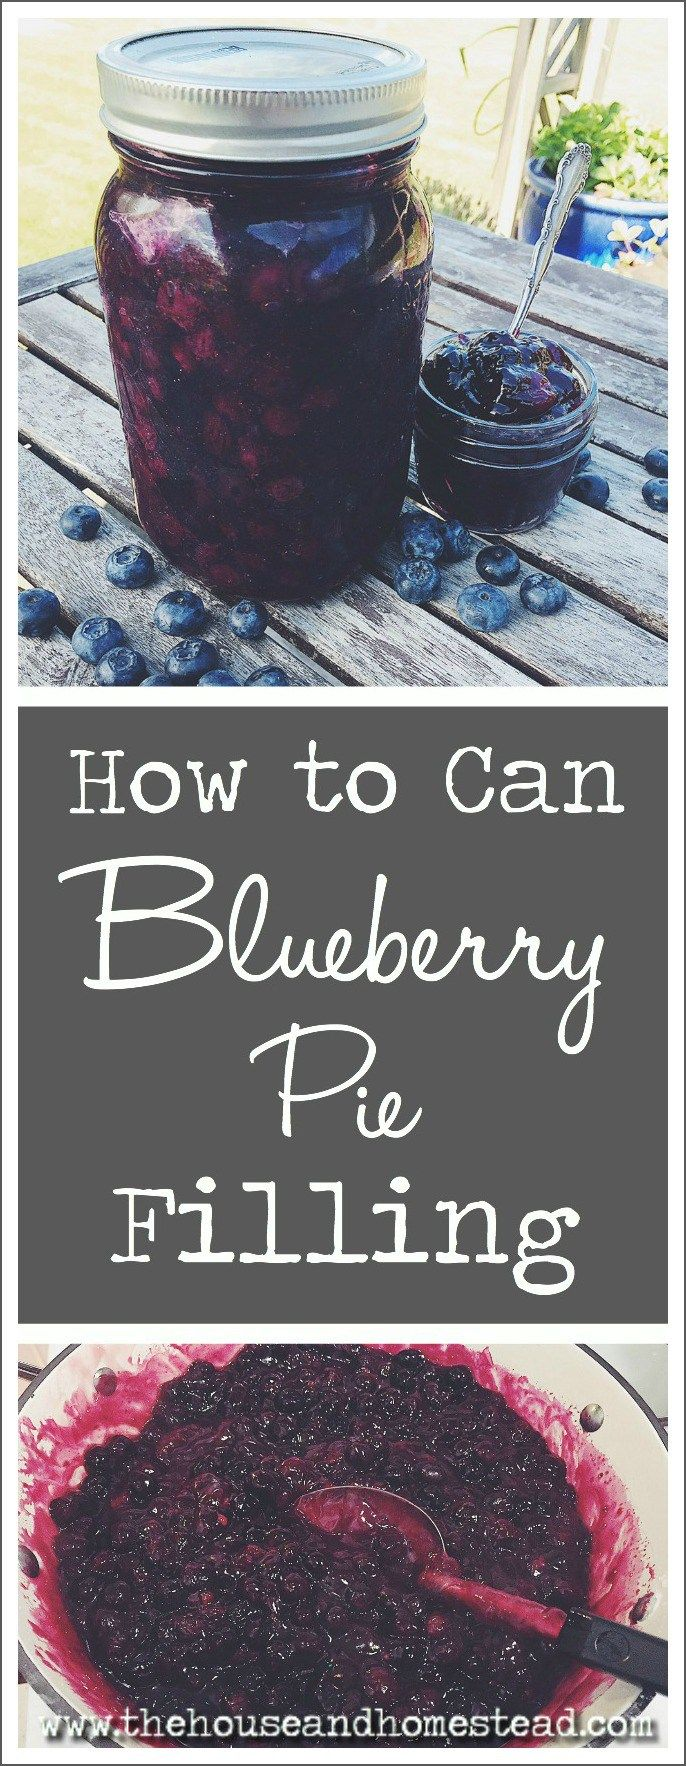 Blueberry pie is the ultimate summer treat. Canning blueberry pie filling allows you to enjoy that summer goodness all year long! Preserve blueberries with this simple and tasty recipe for home-canned blueberry pie filling.